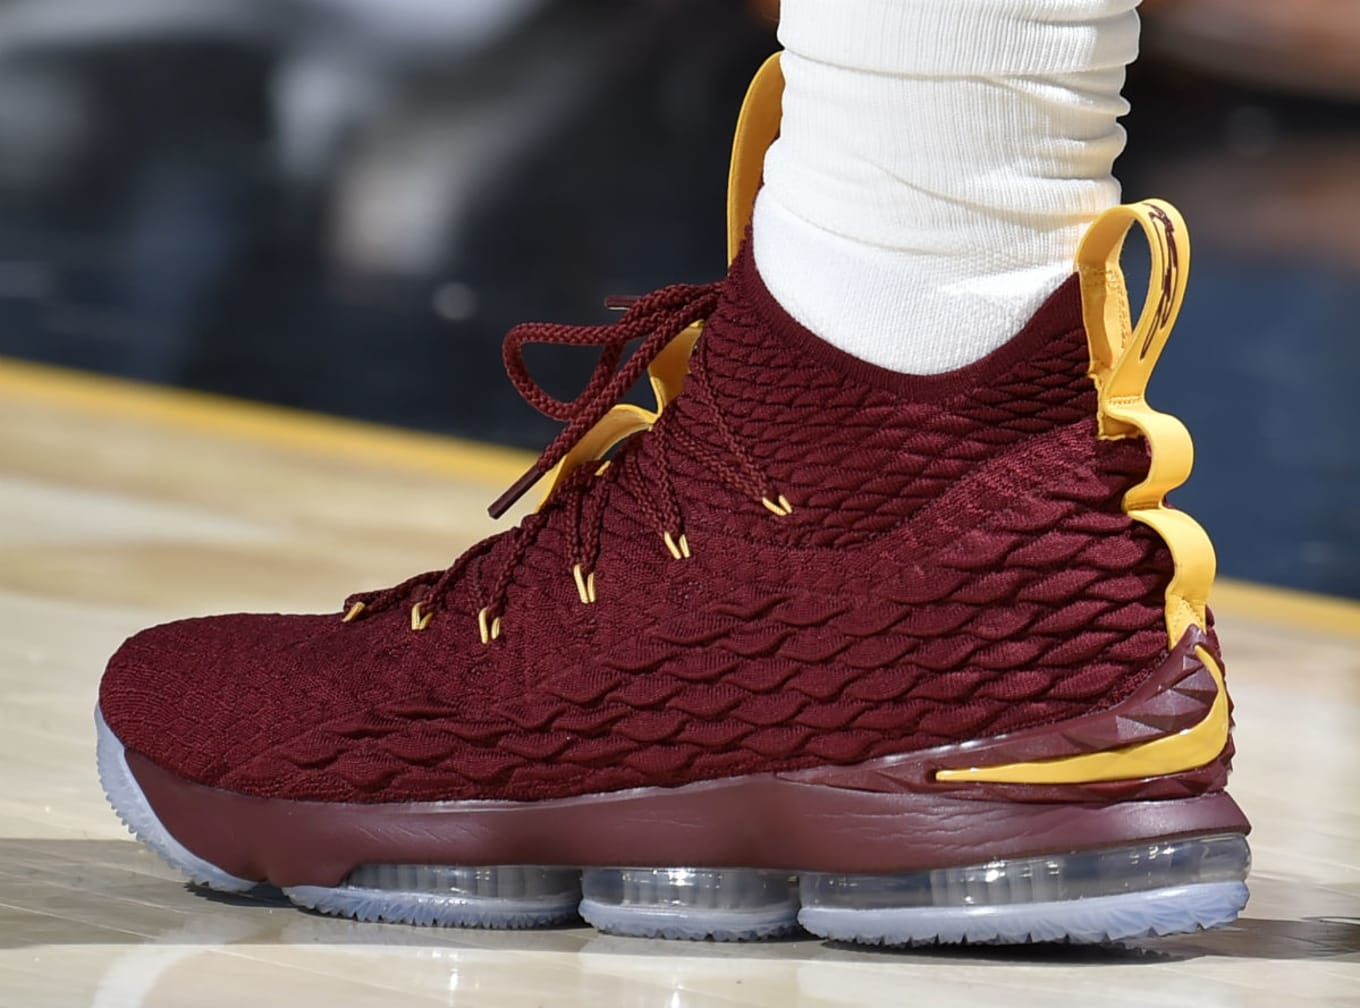 adcb95f06209  SoleWatch  LeBron James Hosts New York in Nike LeBron 15 PE